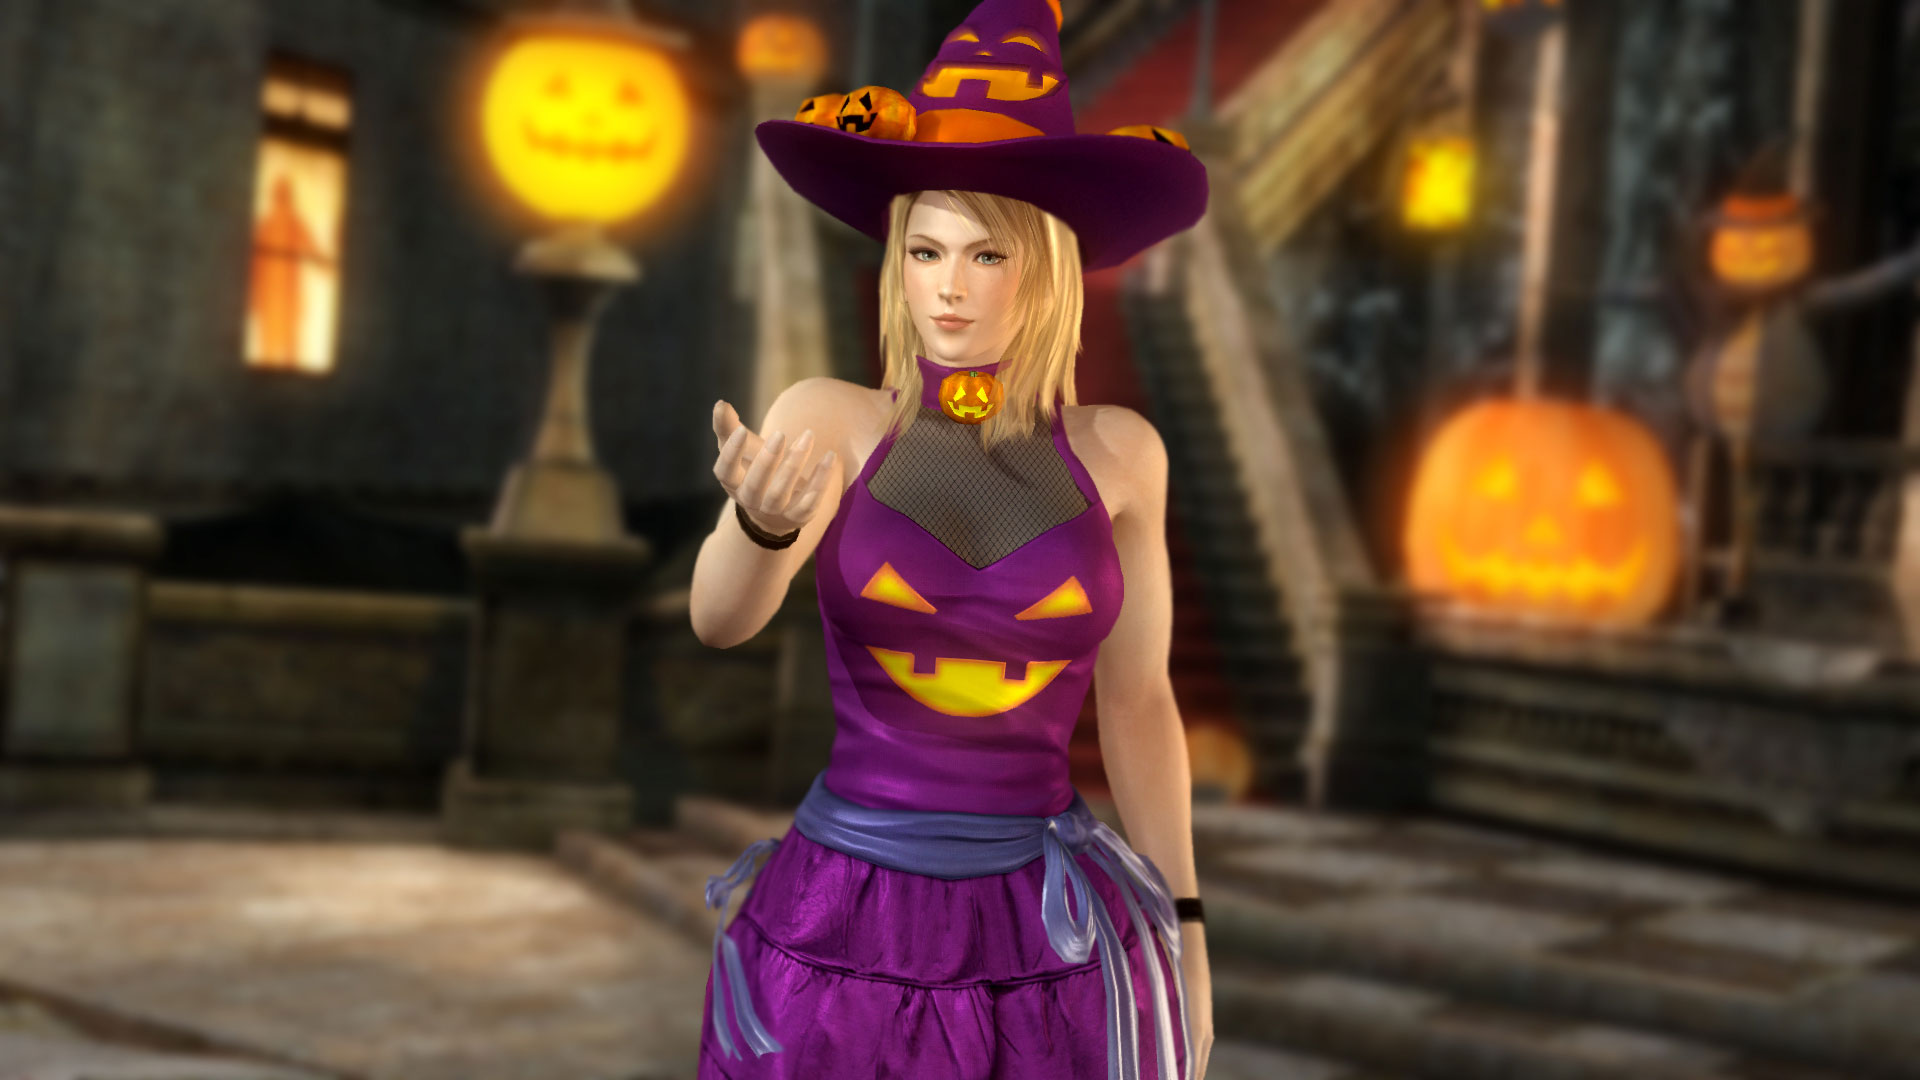 team ninja celebrates halloween with dead or alive 5 costumes - polygon